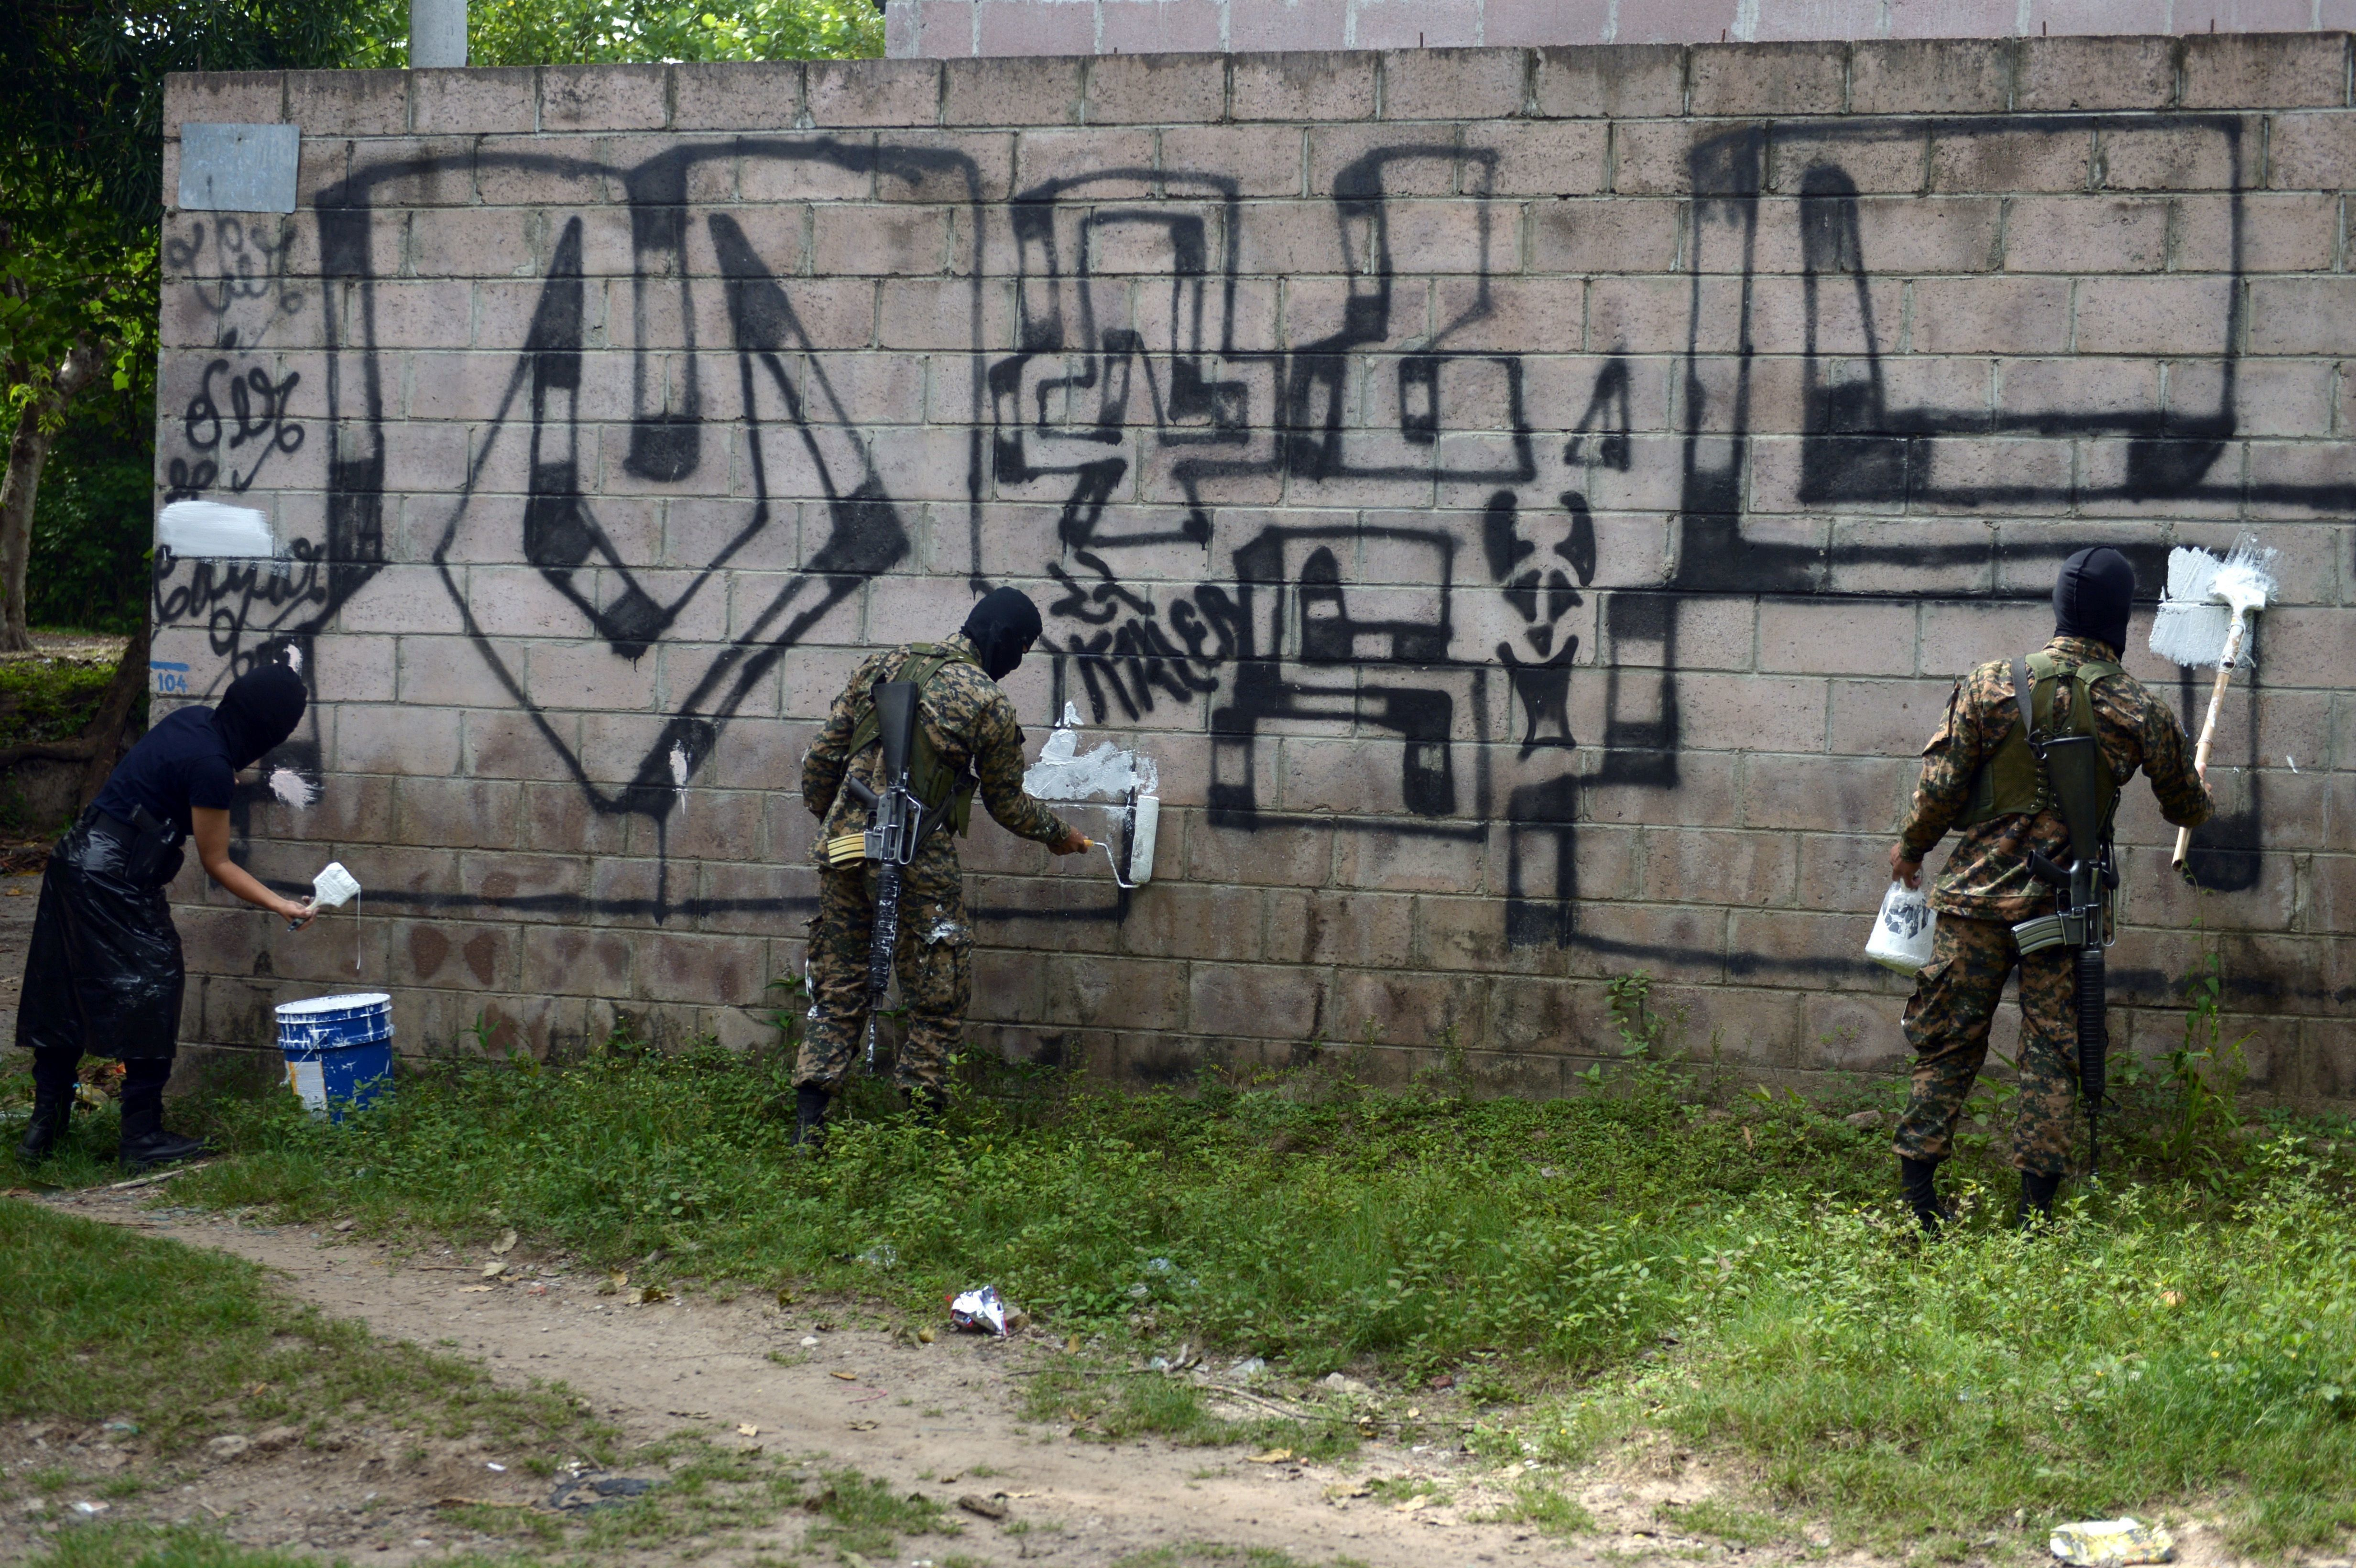 Police officers and soldiers paint over graffiti associated with the Mara Salvatrucha gang, or MS-13, inQuezaltepeque,